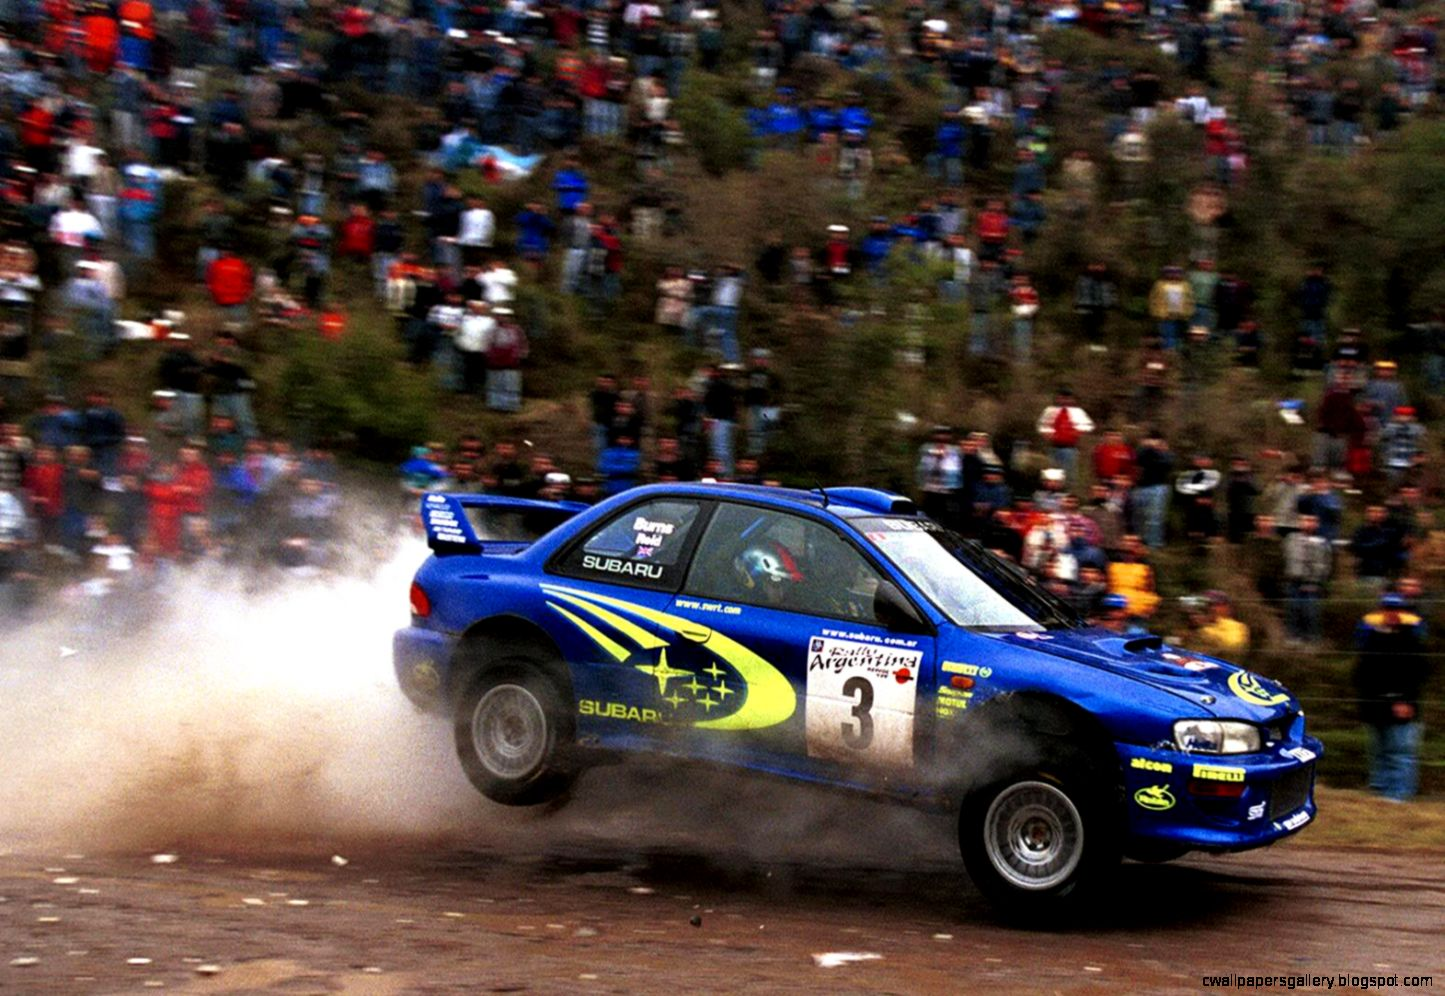 Wallpapers Wrc Girls Cars Subaru Impreza Rally Car Hd Trucks